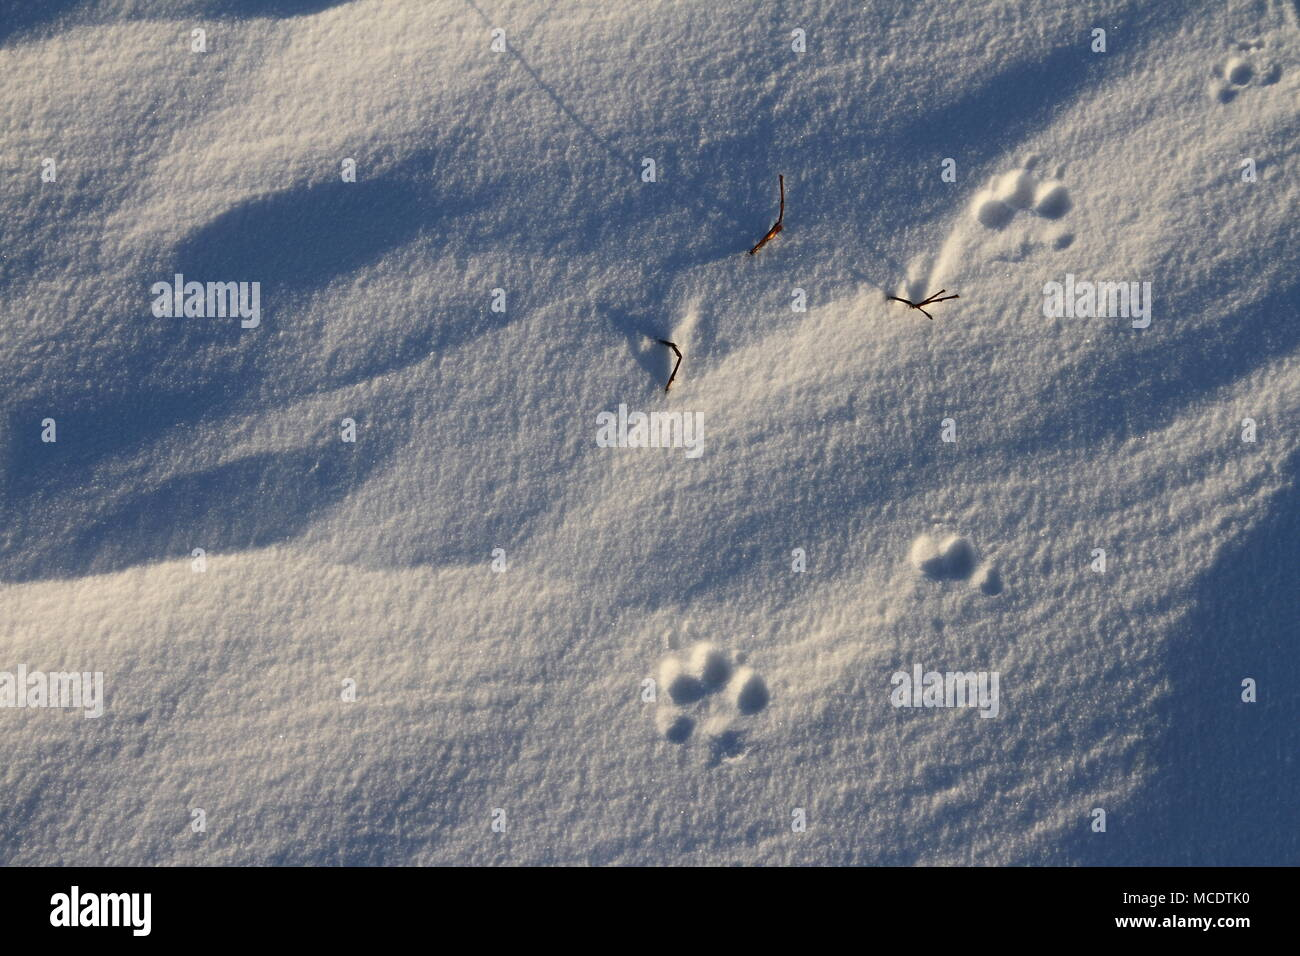 Close-up of small dog paw prints or tracks in snow near Arviat, Nunavut Canada - Stock Image